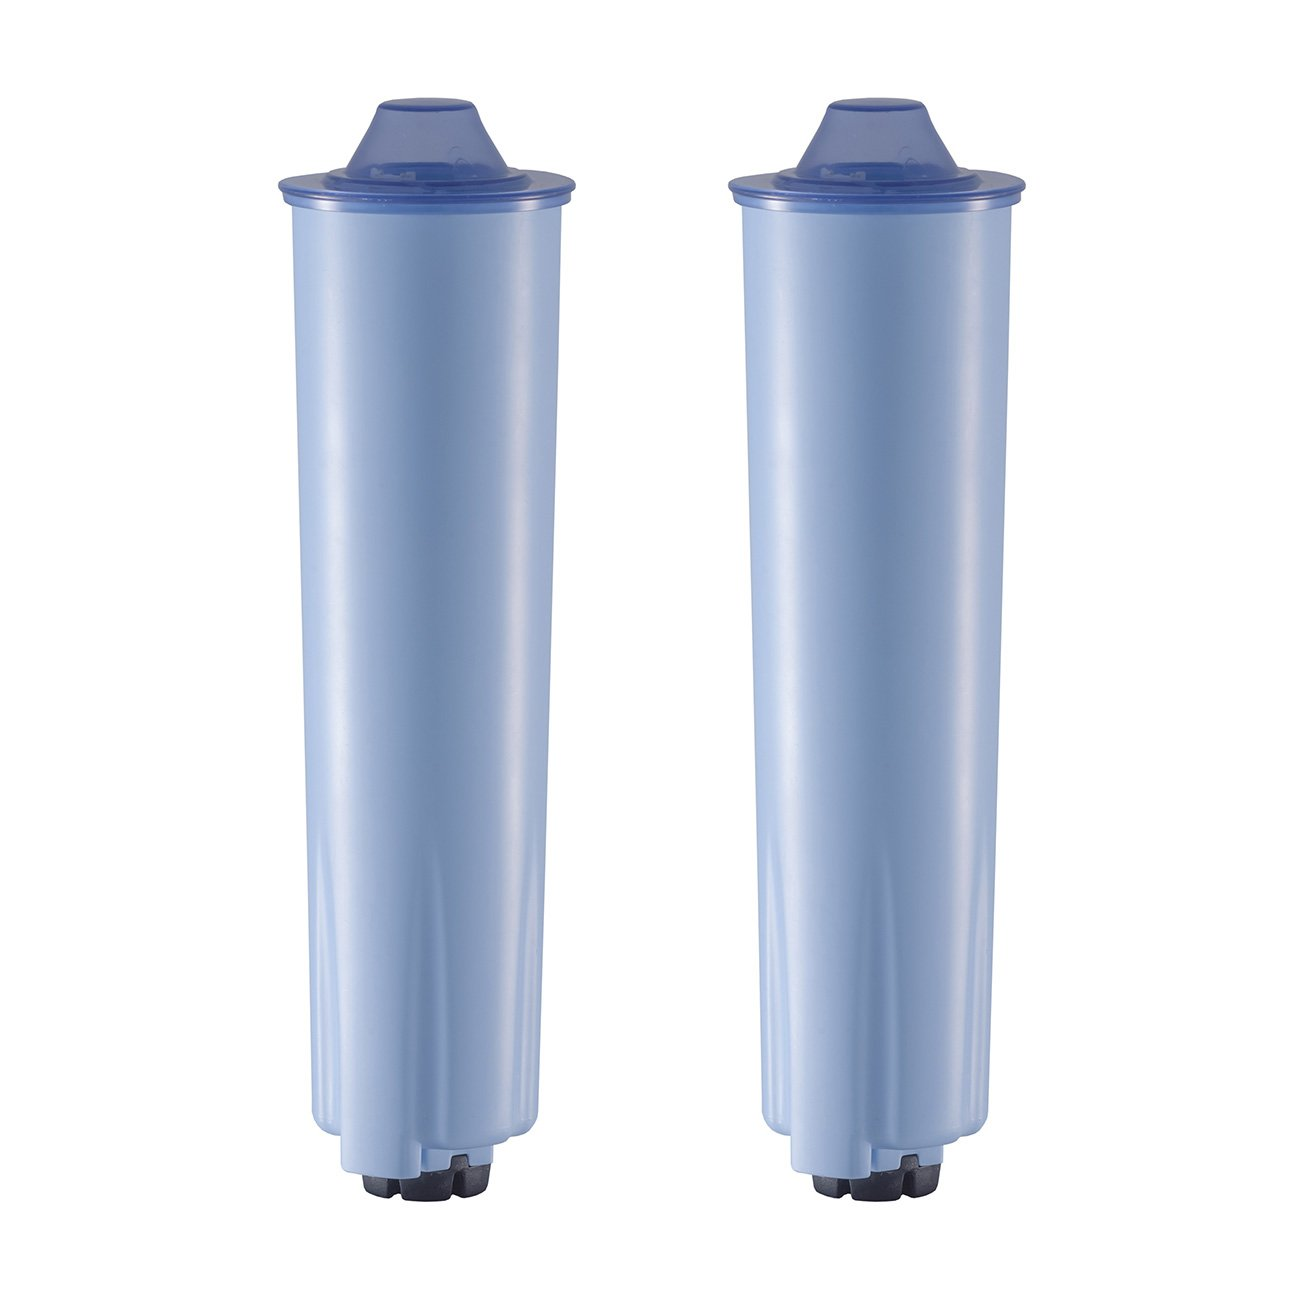 2x Water Filter Cartridges (pluggable) for Jura ENA / Claris blue coffee machines